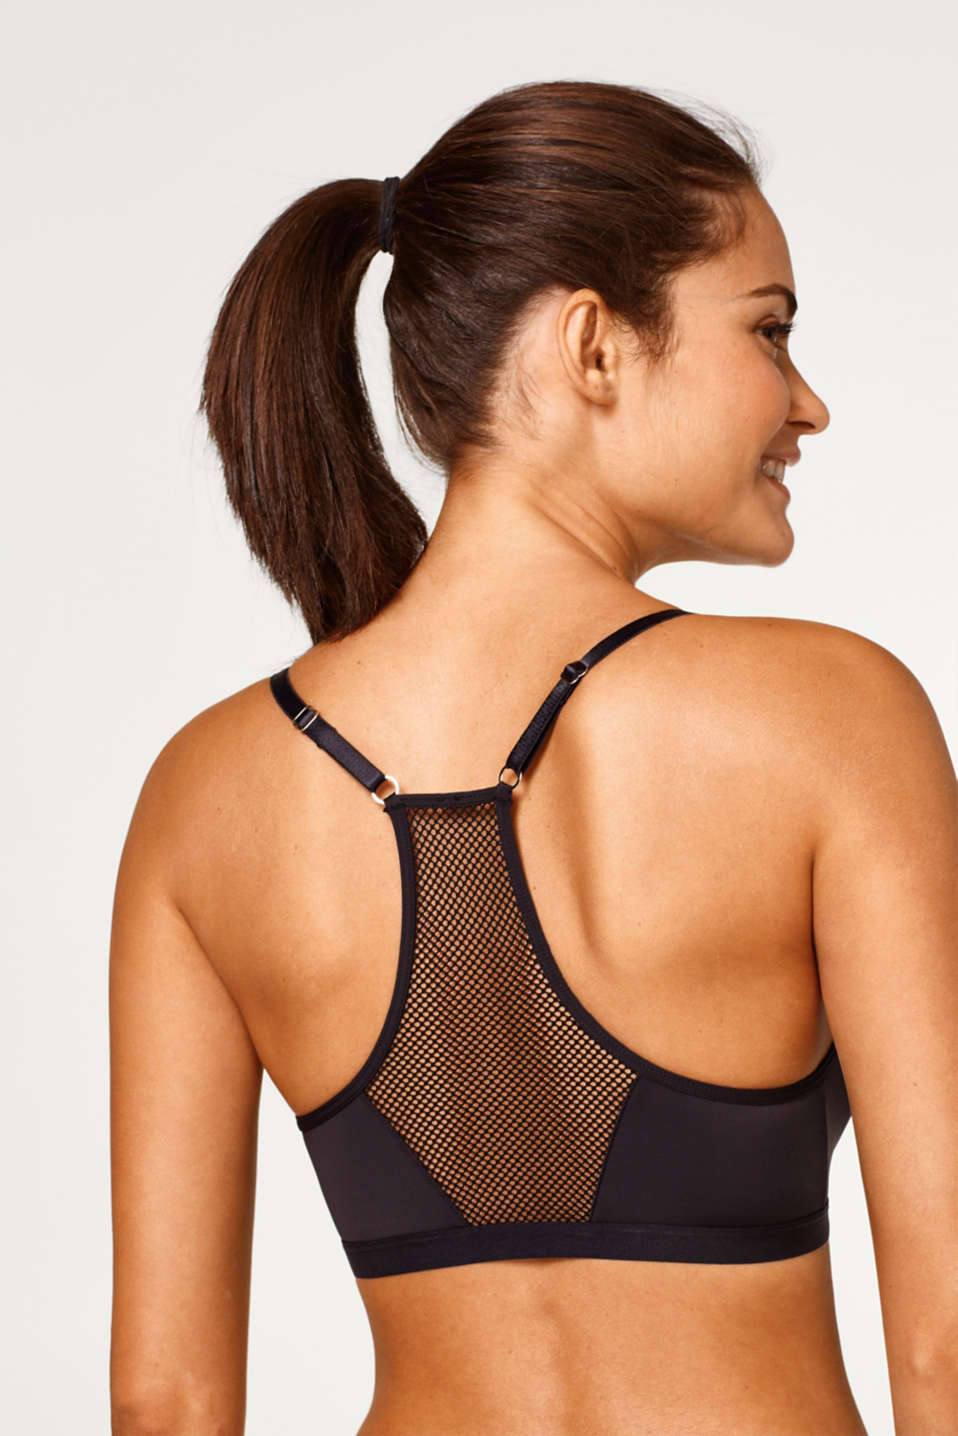 Unreinforced bodice with mesh and racer back